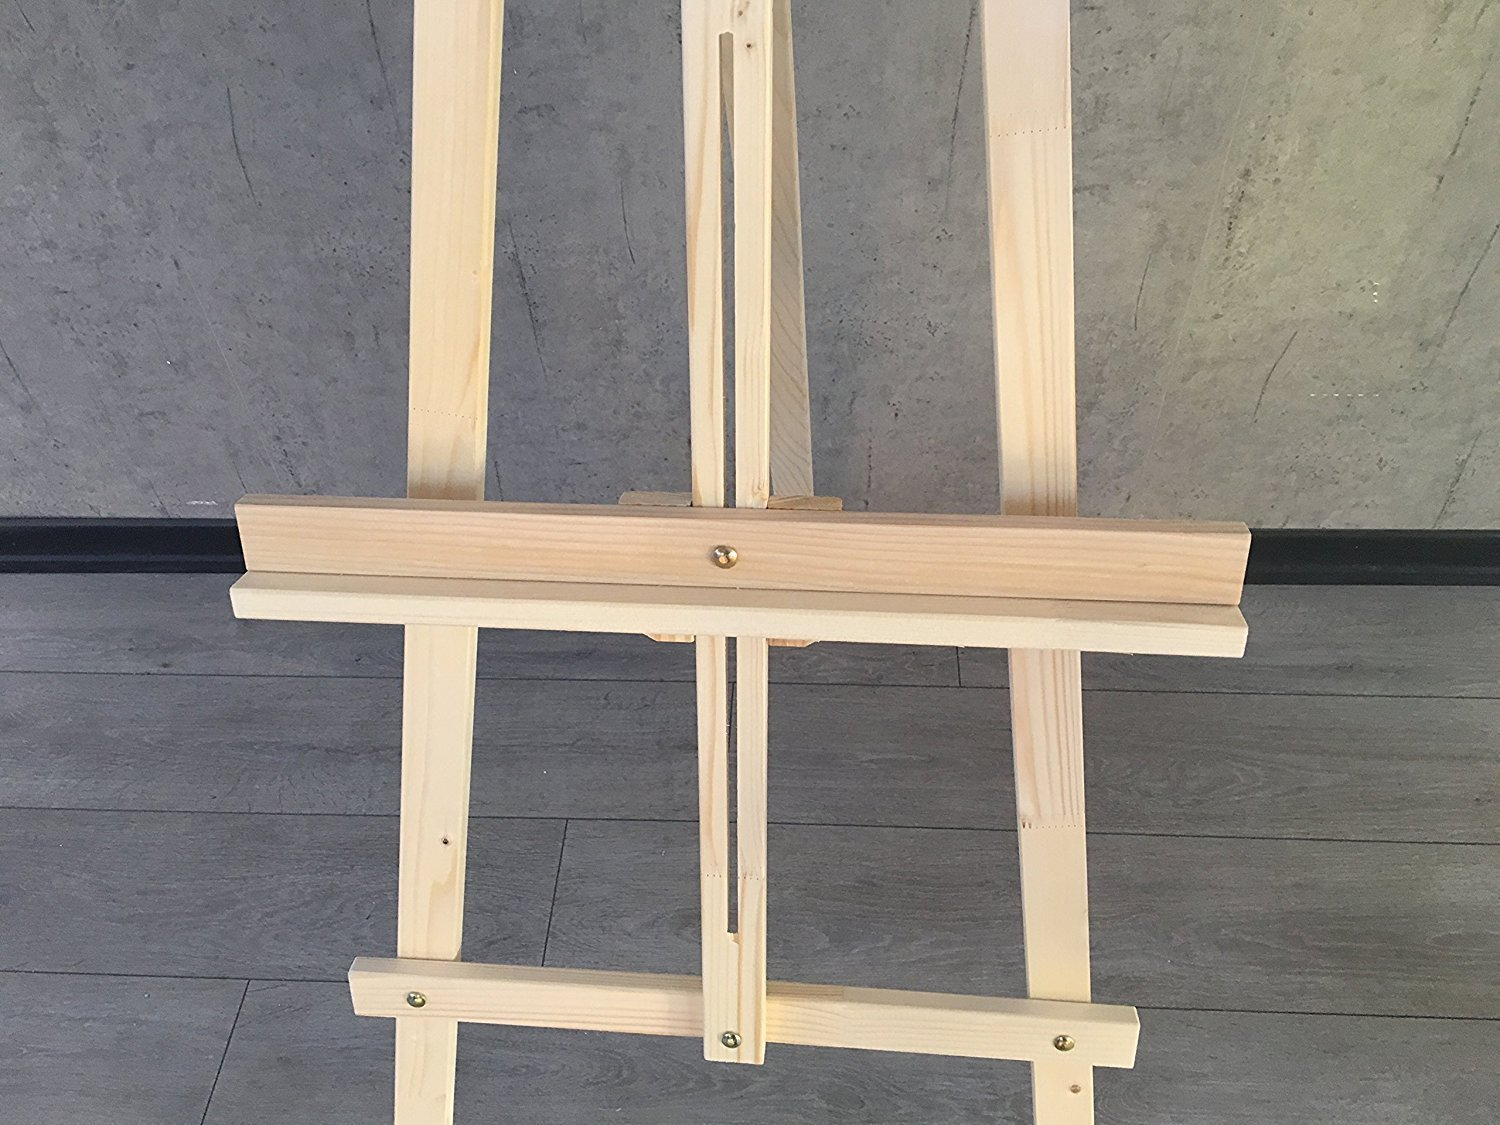 Adjustable Wooden Easel Painting Stand - Canvas Tripod Easel